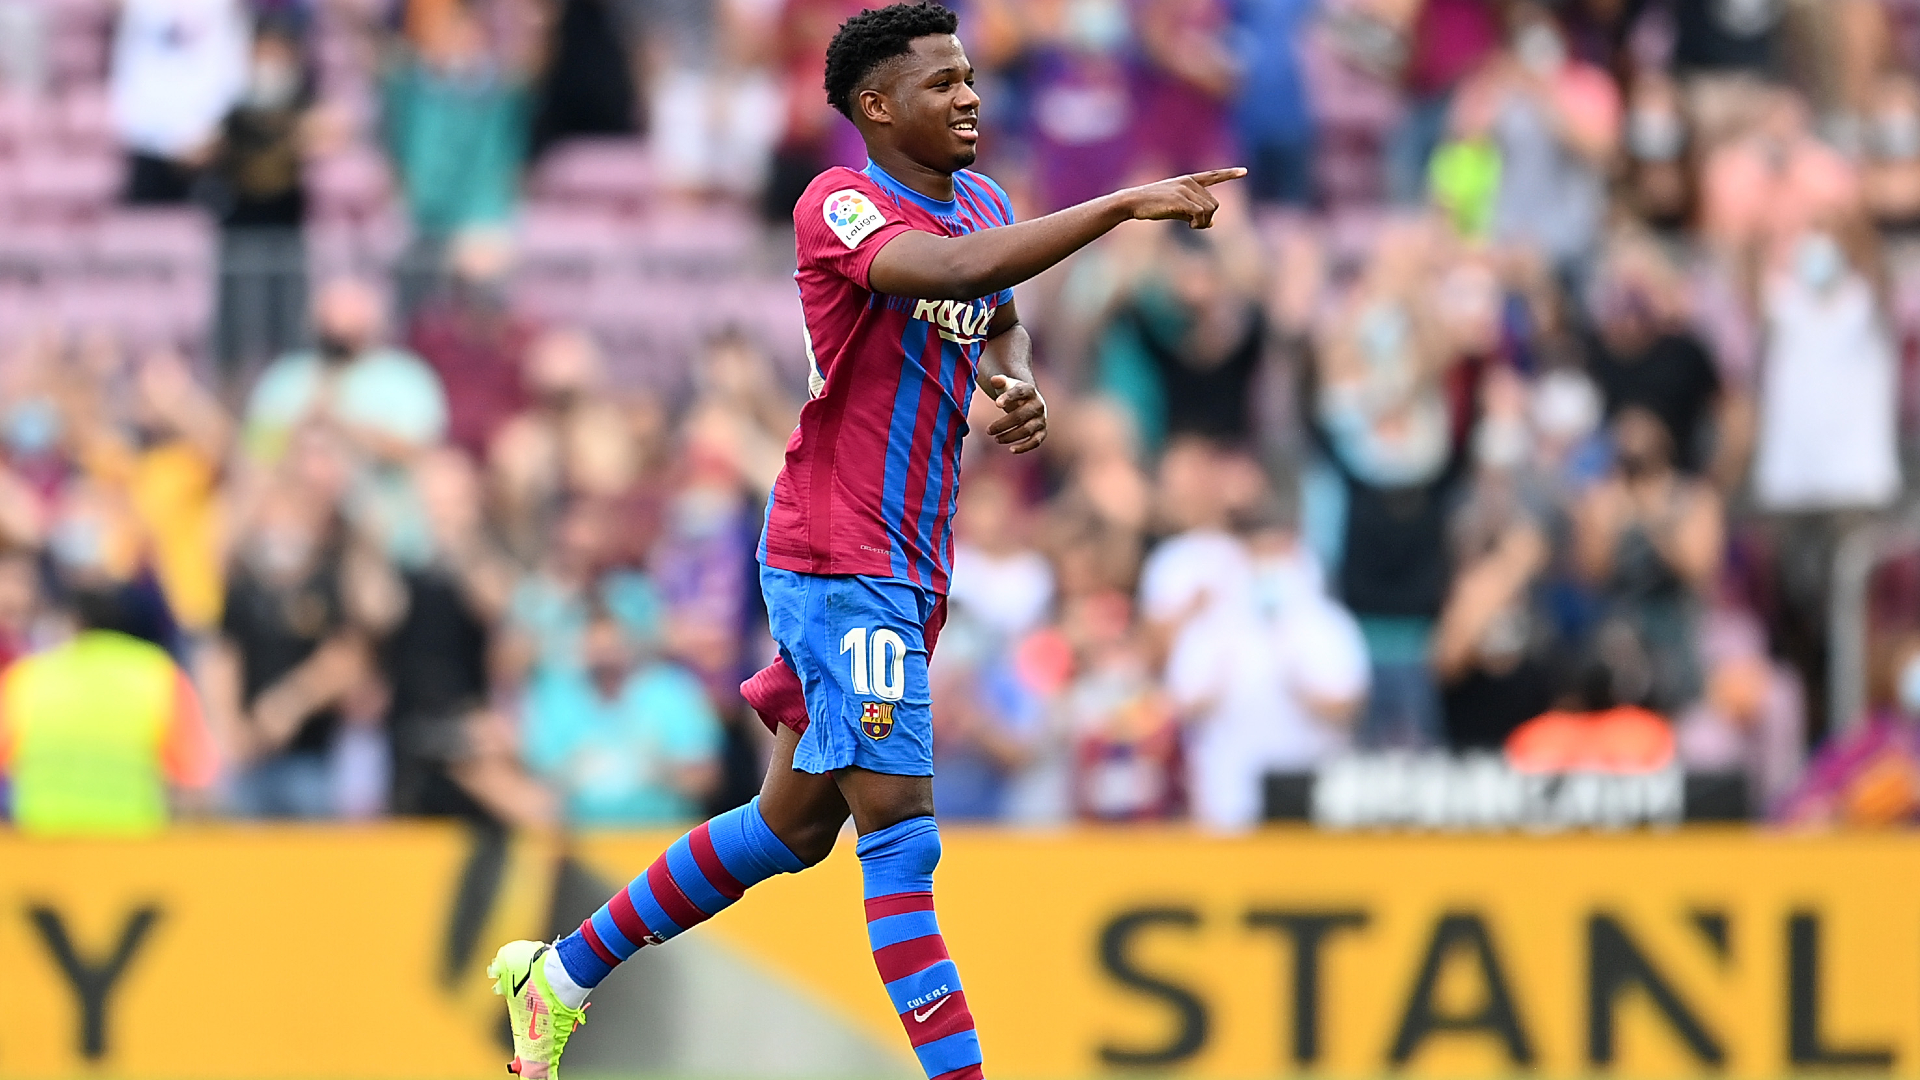 Ansu Fati scores in first Barcelona appearance in 10 months